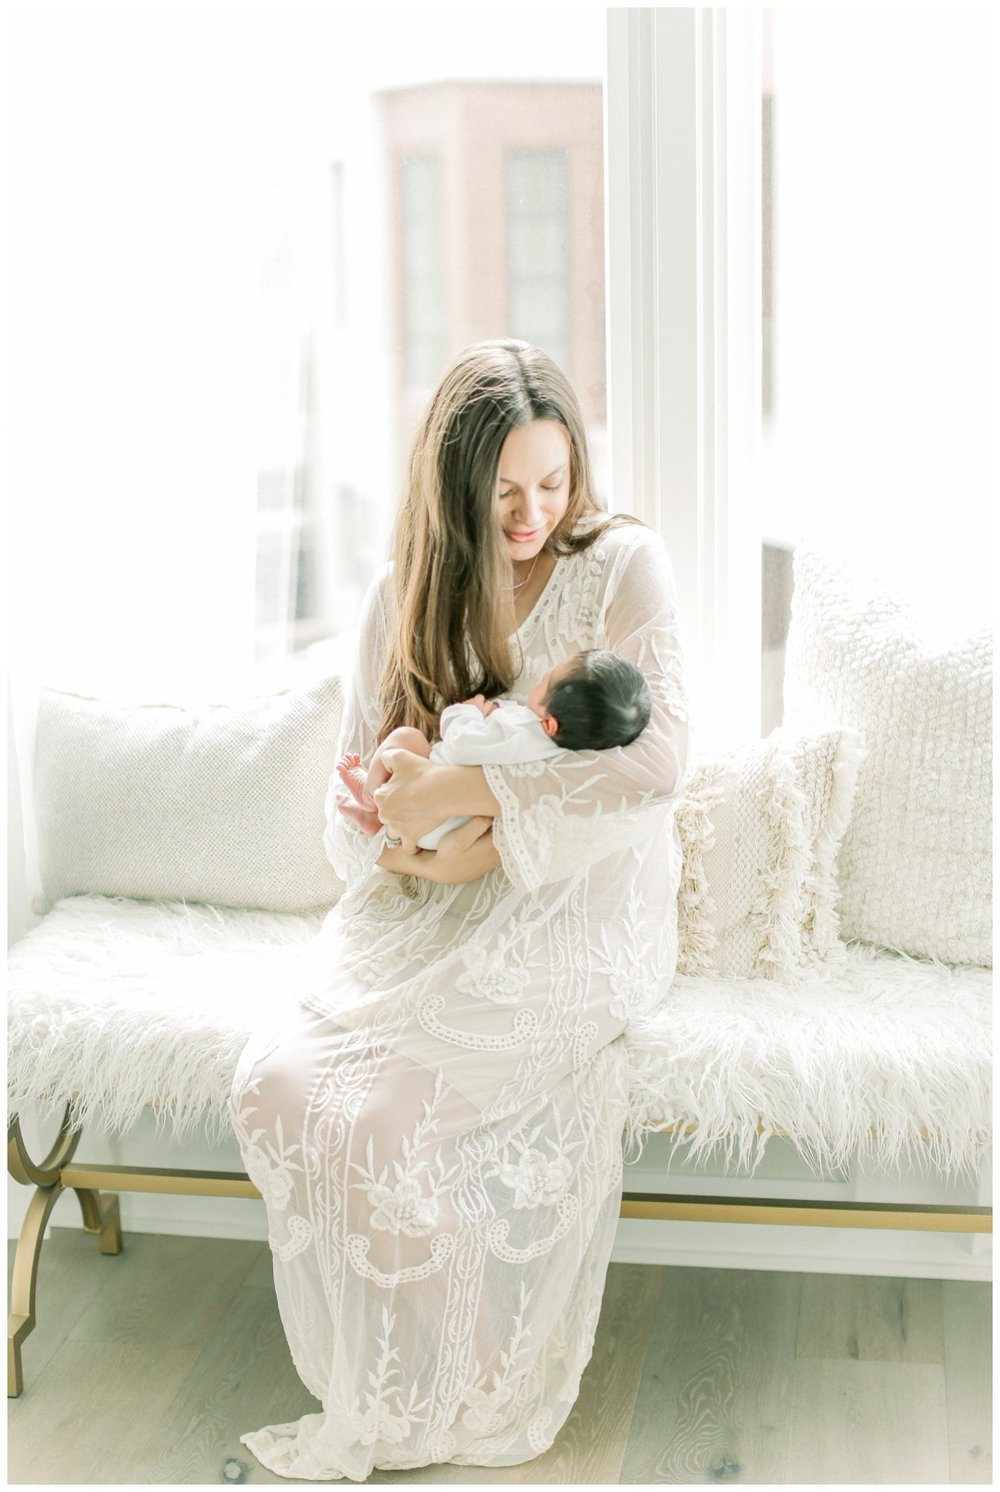 Newport_Beach_Lifestyle_in-Home_Photographer_Newport_Beach_Newborn_Photography_Orange_County_Newborn_Photographer_Cori_Kleckner_Photography_Orange_County_in-home_Photography__2000.jpg